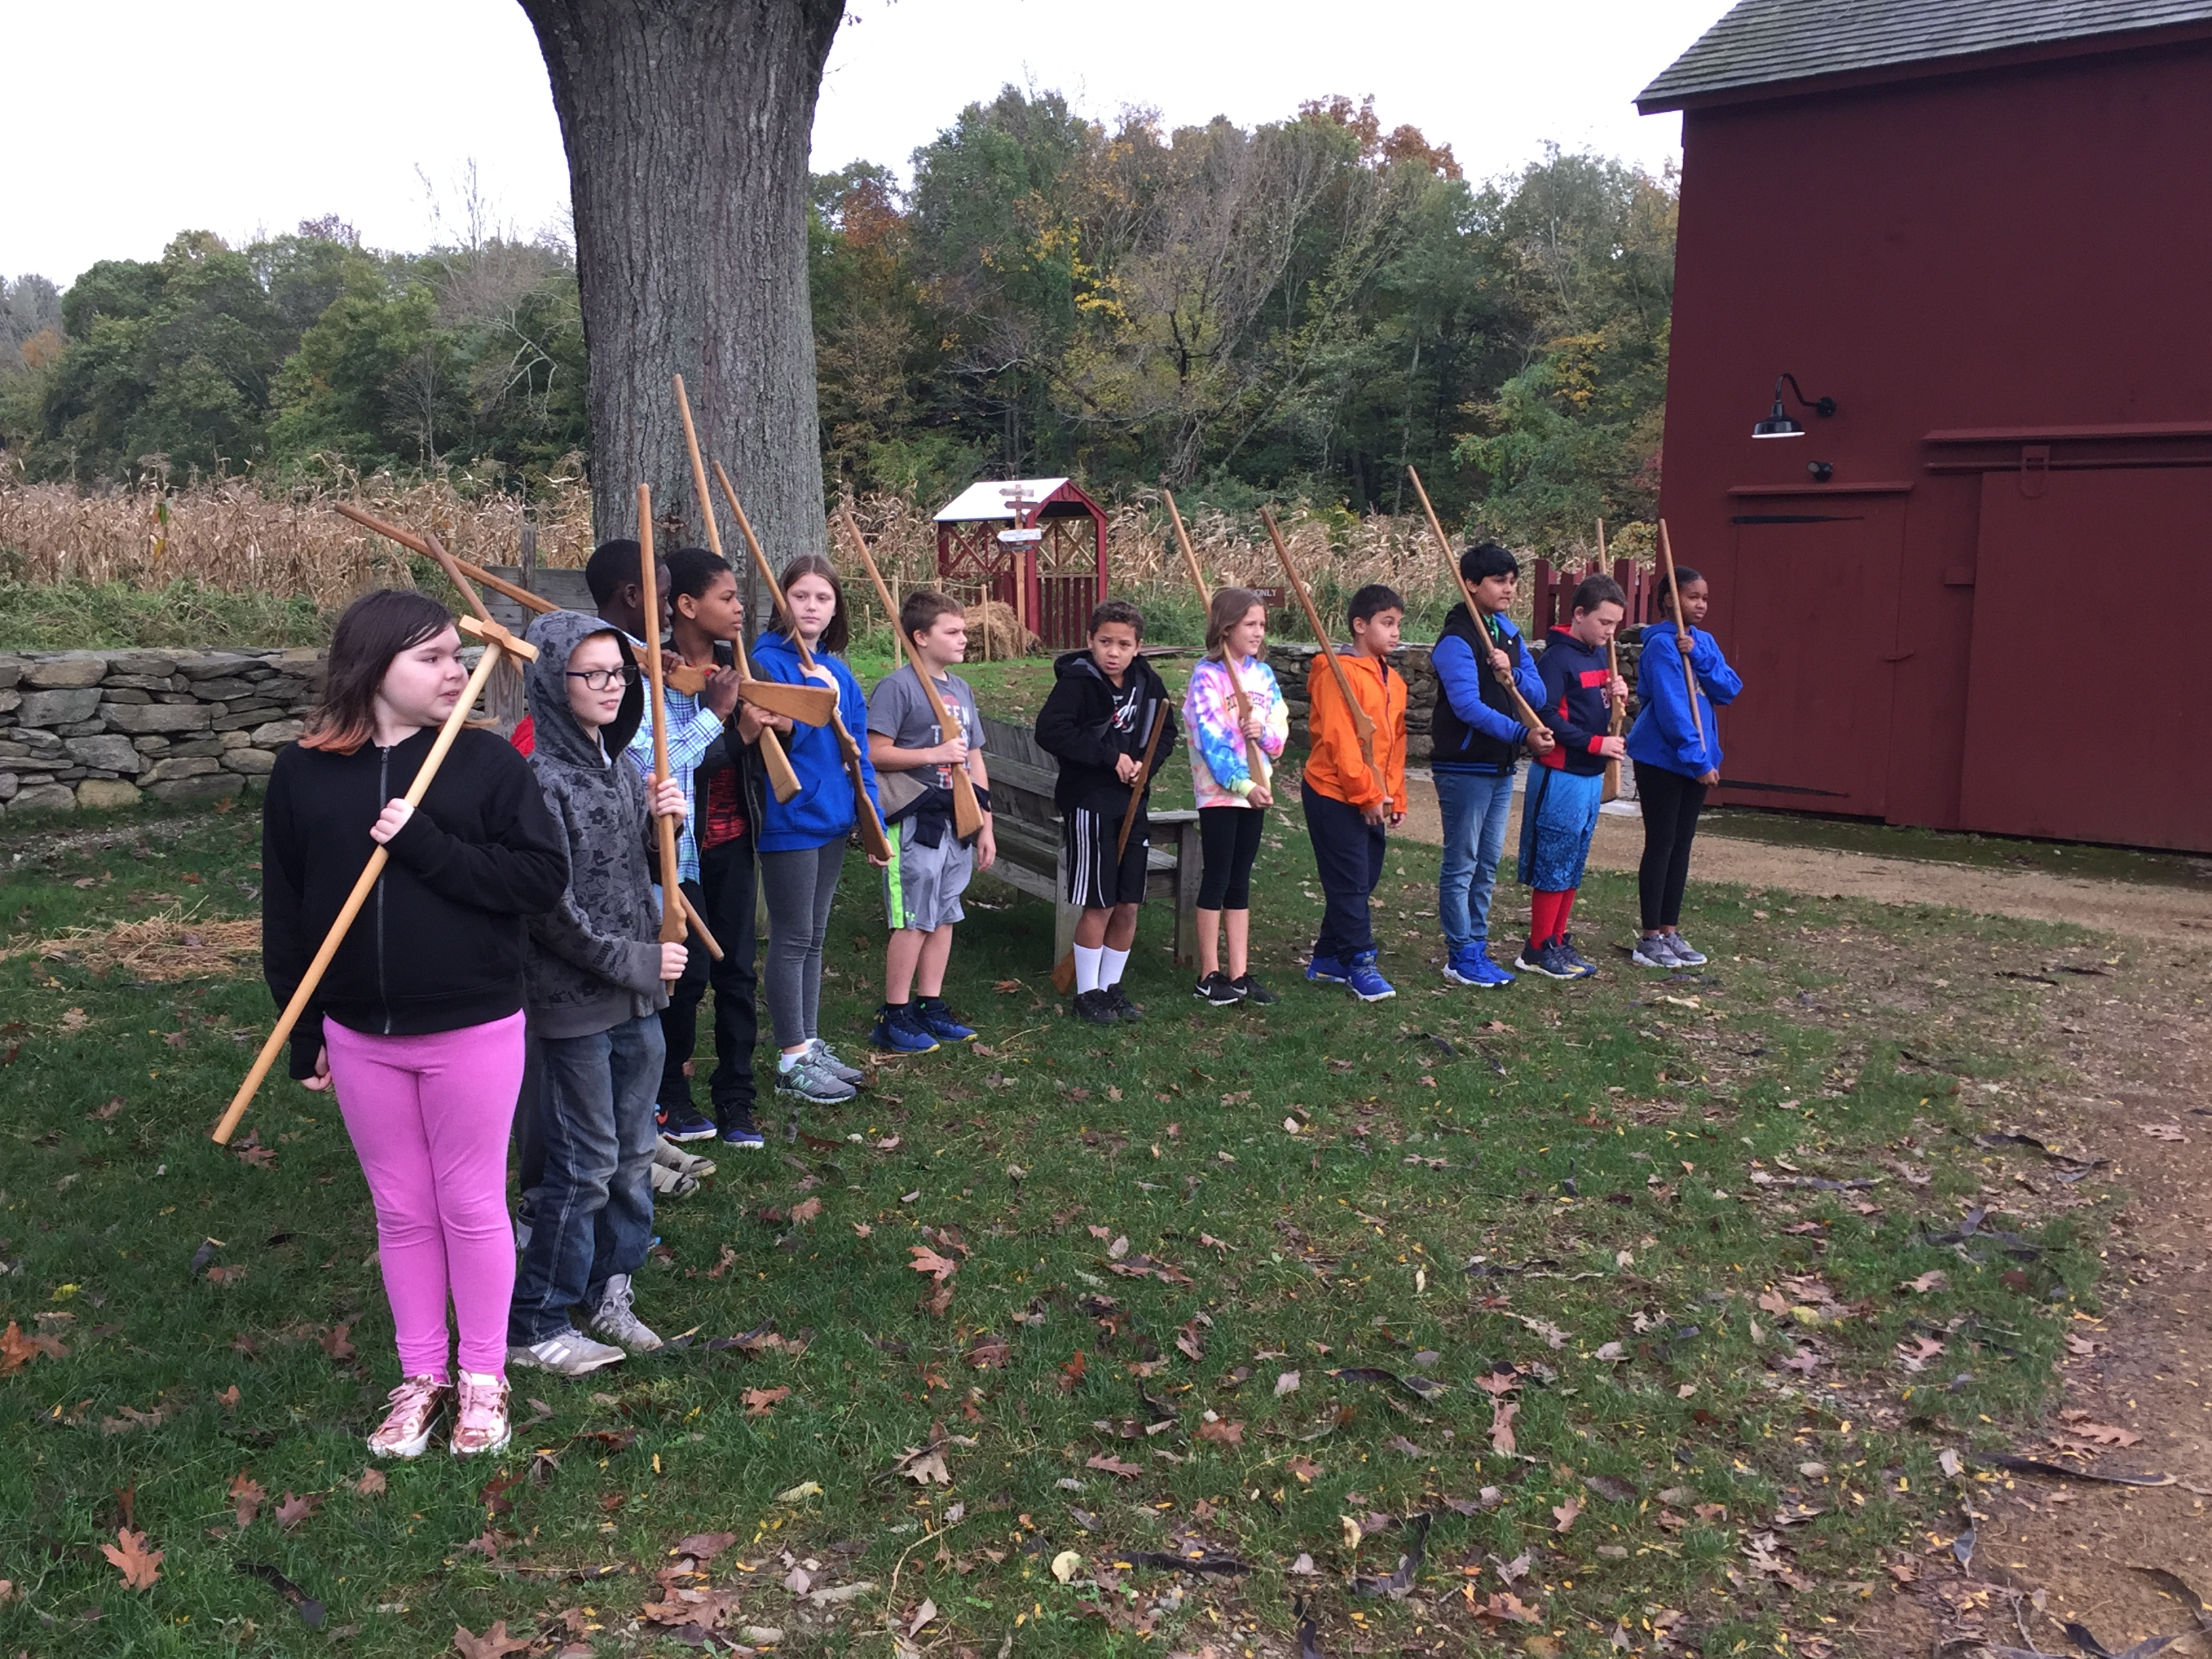 Students mustering at Nathan Hale Homestead.